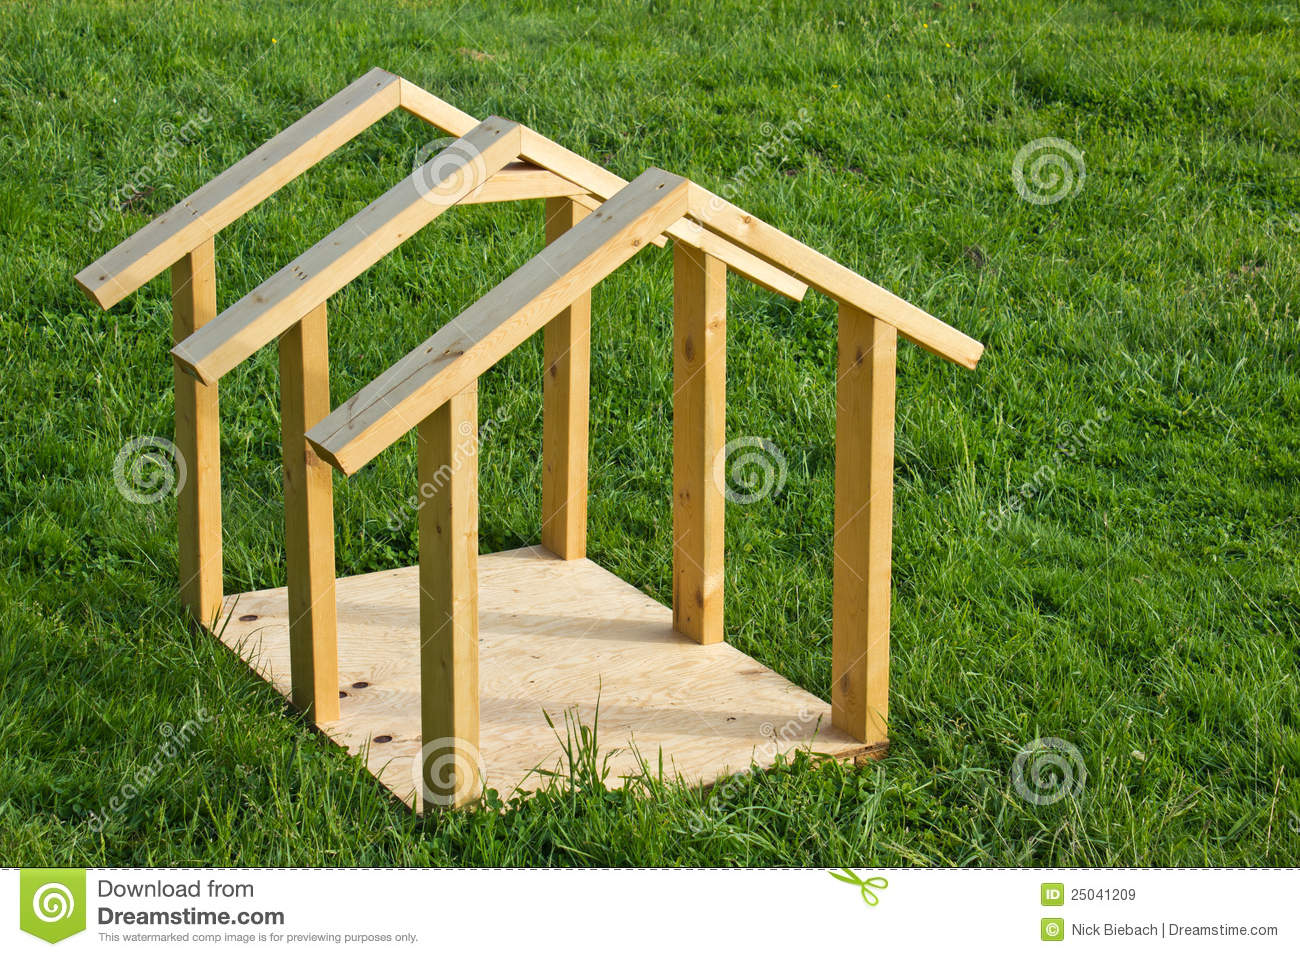 Dog house wood frame royalty free stock images image for How to go about building a house